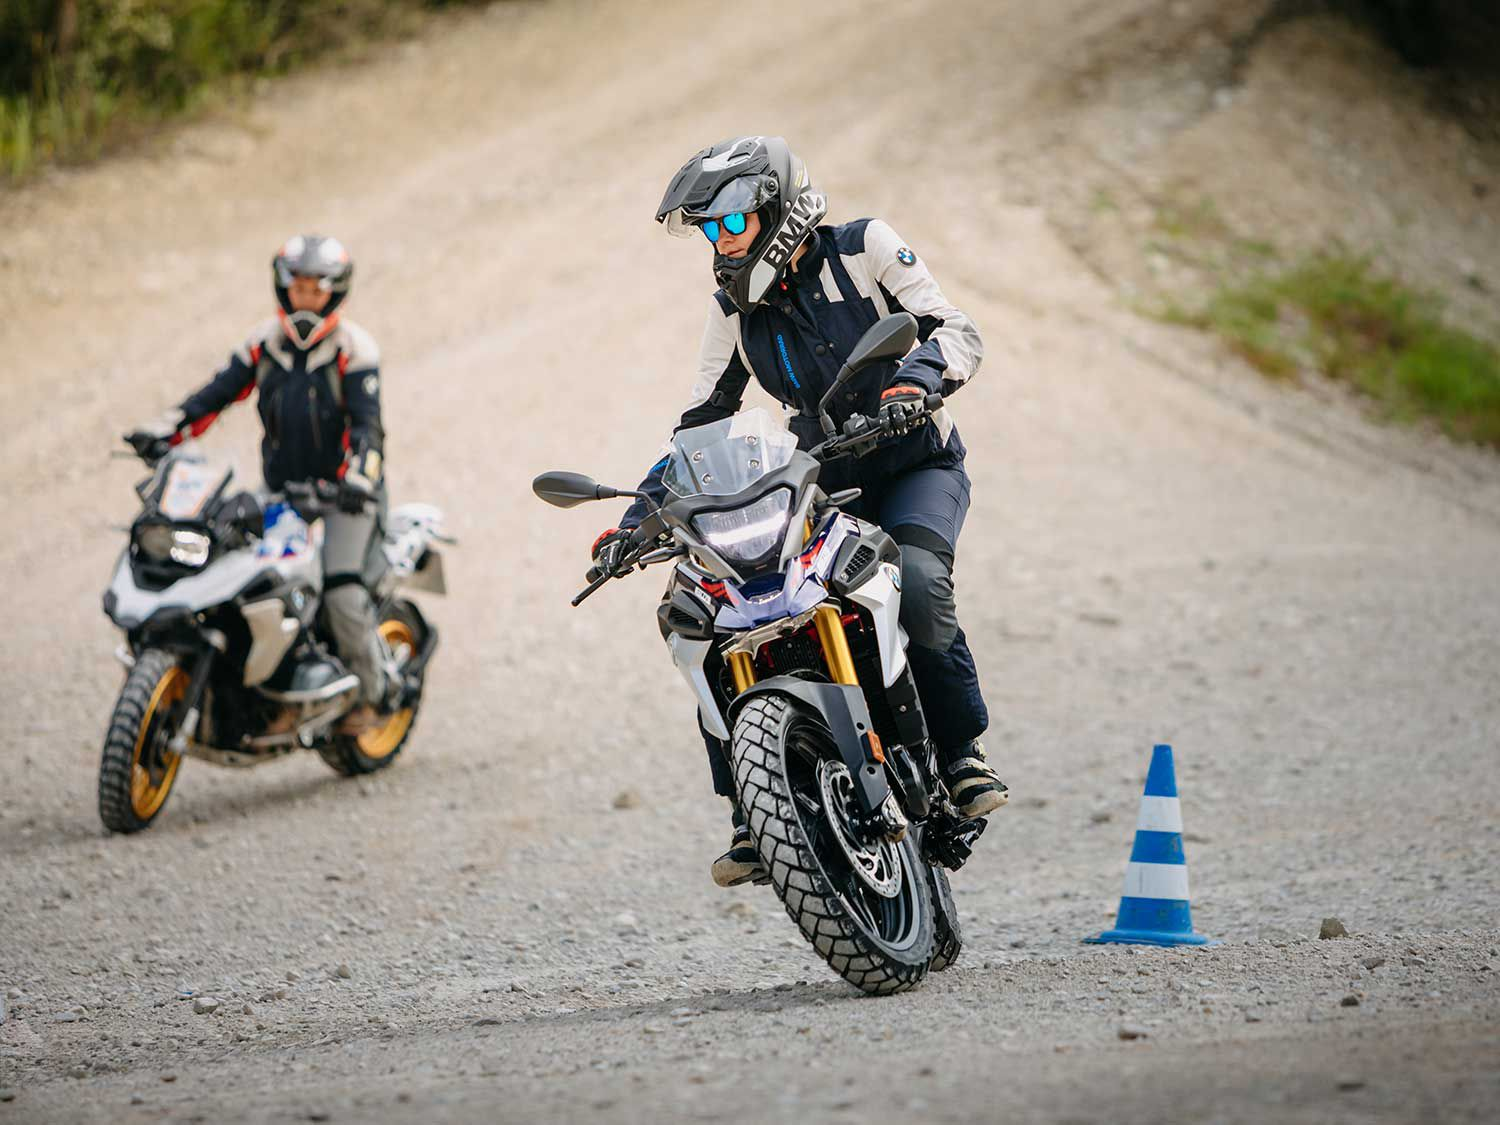 If you're looking to boost your off-road adventure chops, the G 310 GS is a good machine to use.